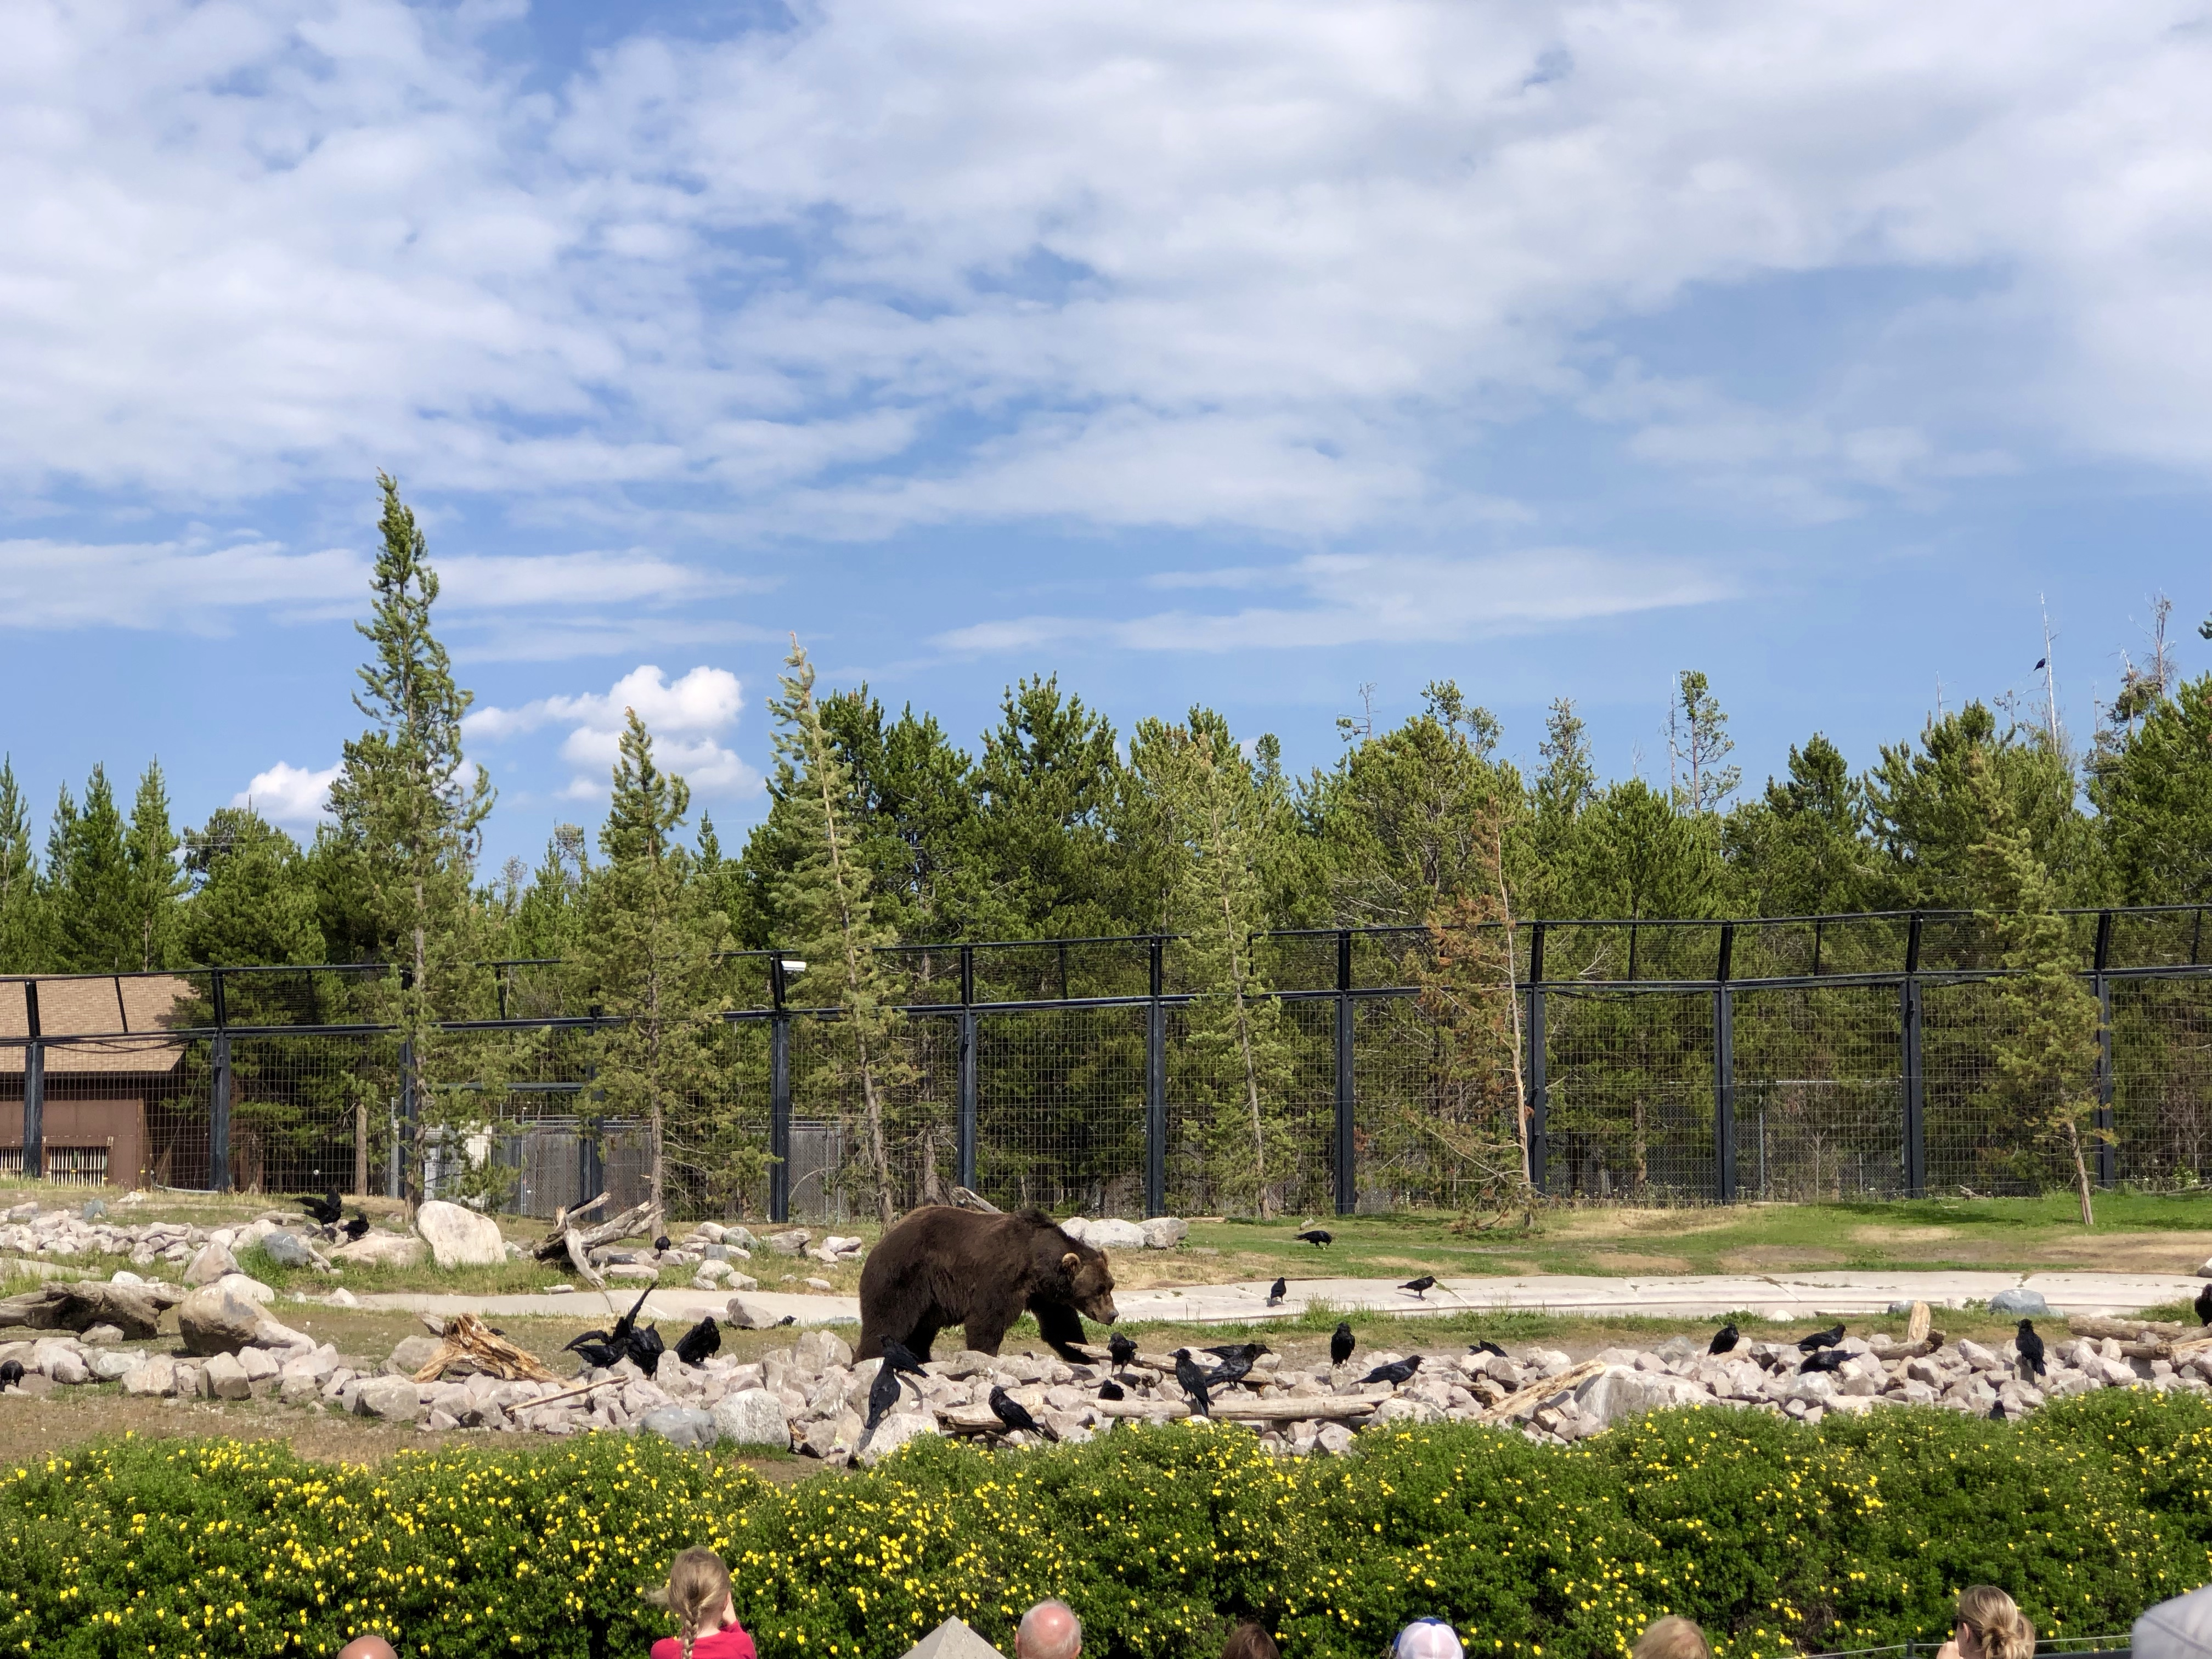 Things to do near Yellowstone include museums, hiking, more.